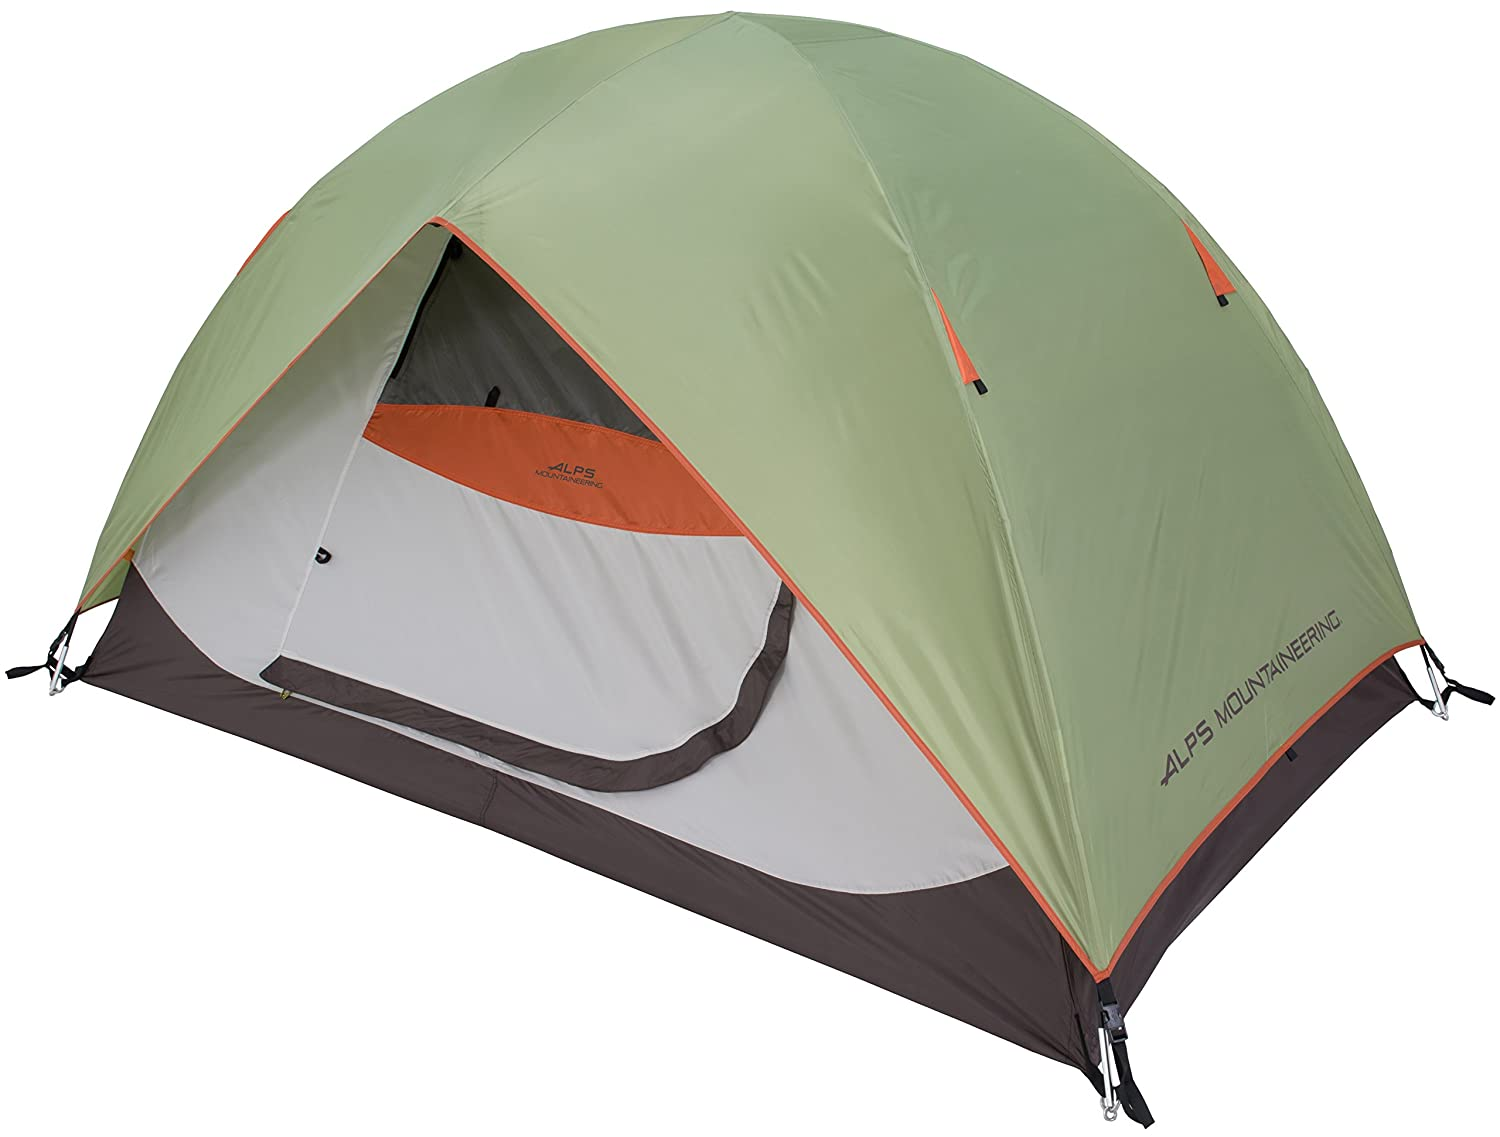 Amazon.com  ALPS Mountaineering Meramac 2-Person Tent  Backpacking Tents  Sports u0026 Outdoors  sc 1 st  Amazon.com & Amazon.com : ALPS Mountaineering Meramac 2-Person Tent ...